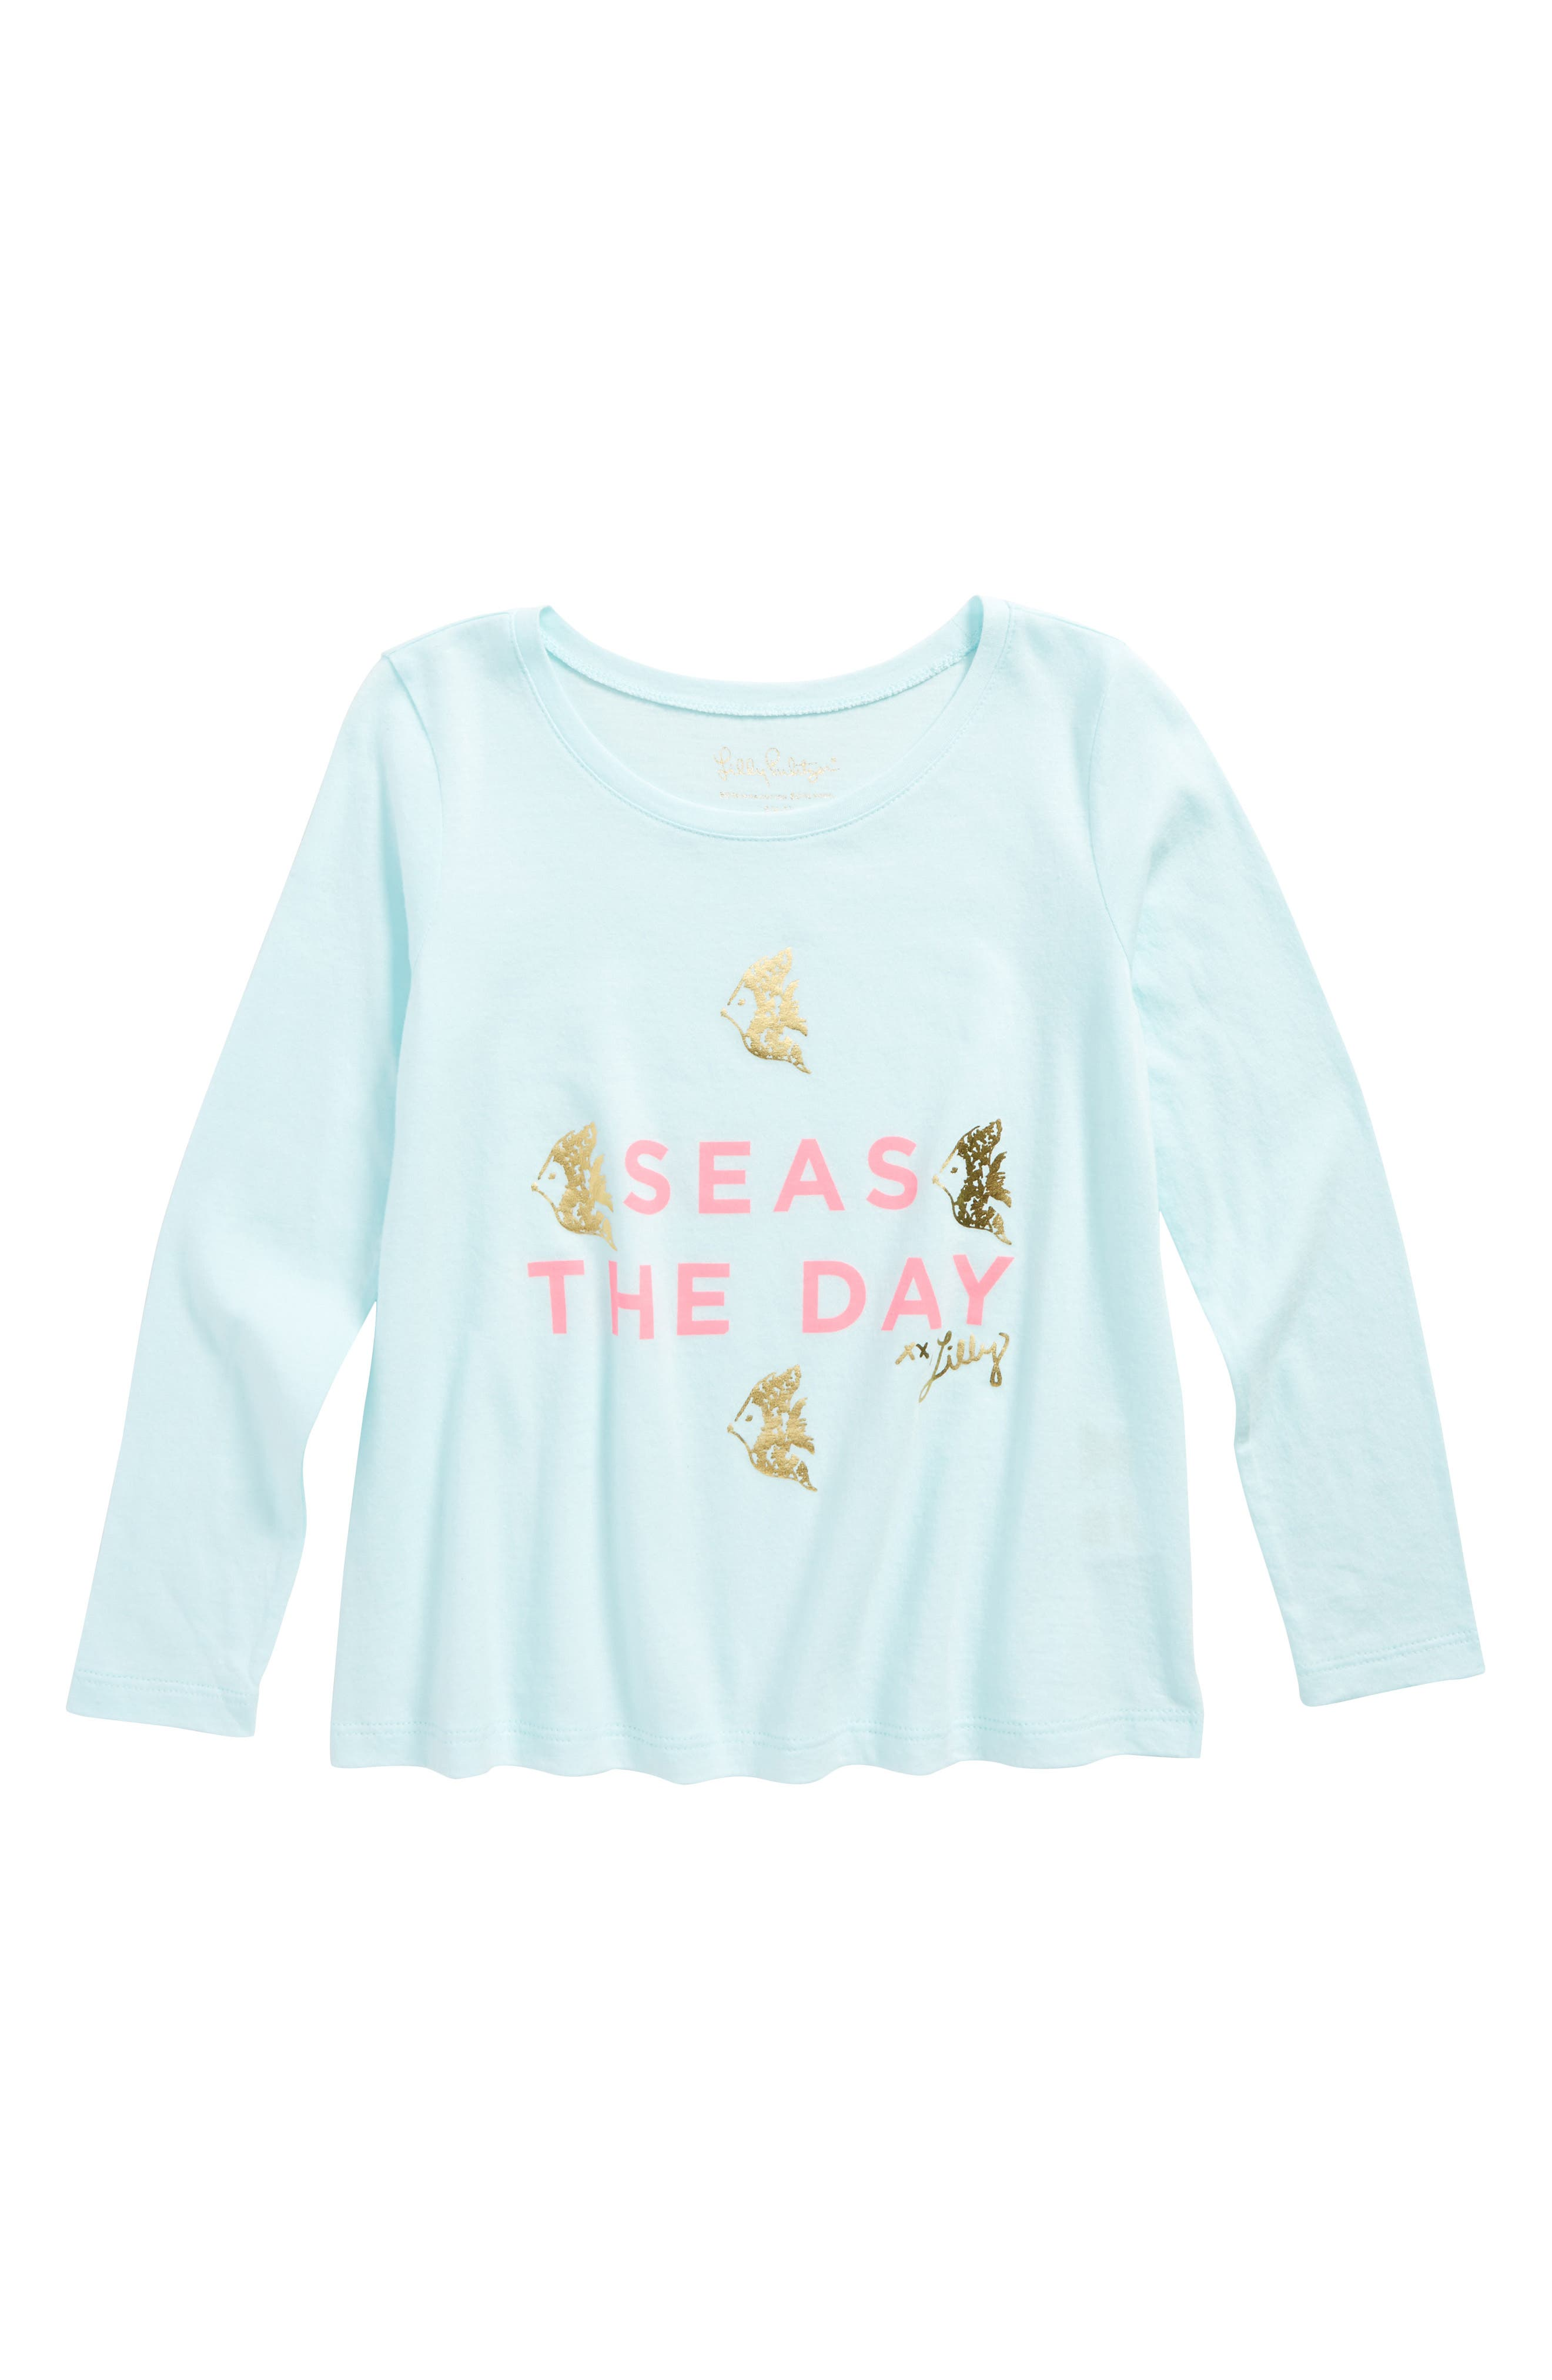 Kay Graphic Tee,                         Main,                         color, Blue/ Pink Seas The Day